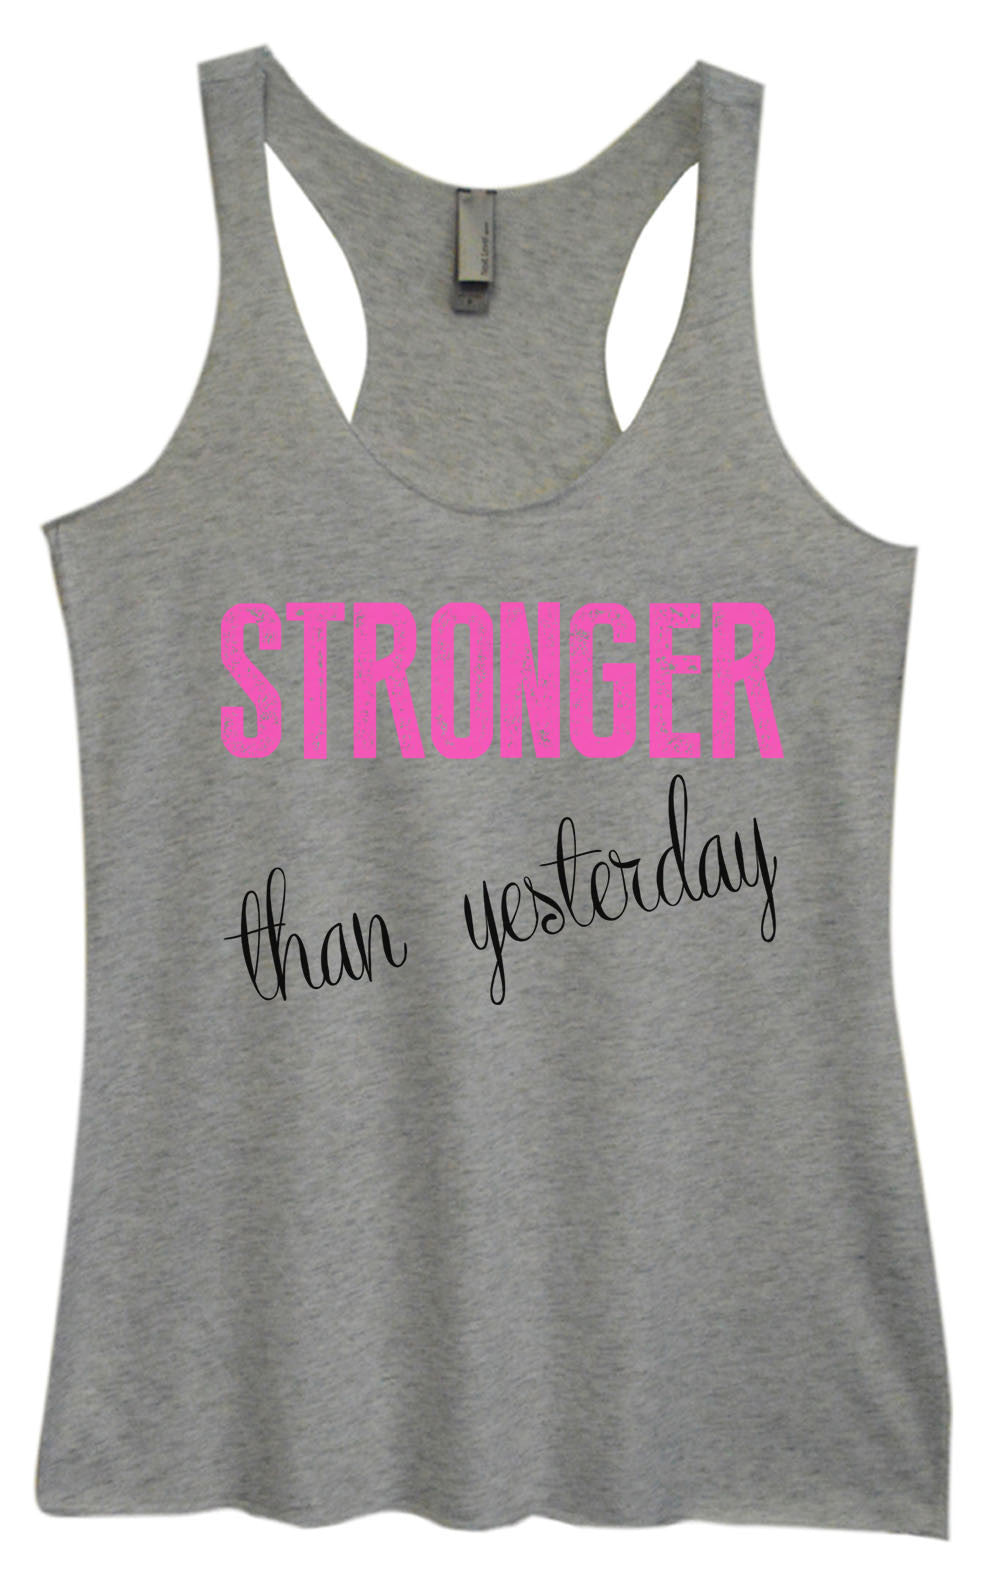 Womens Fashion Triblend Tank Top - Stronger Than Yesterday - Tri-768 - Funny Shirts Tank Tops Burnouts and Triblends  - 2